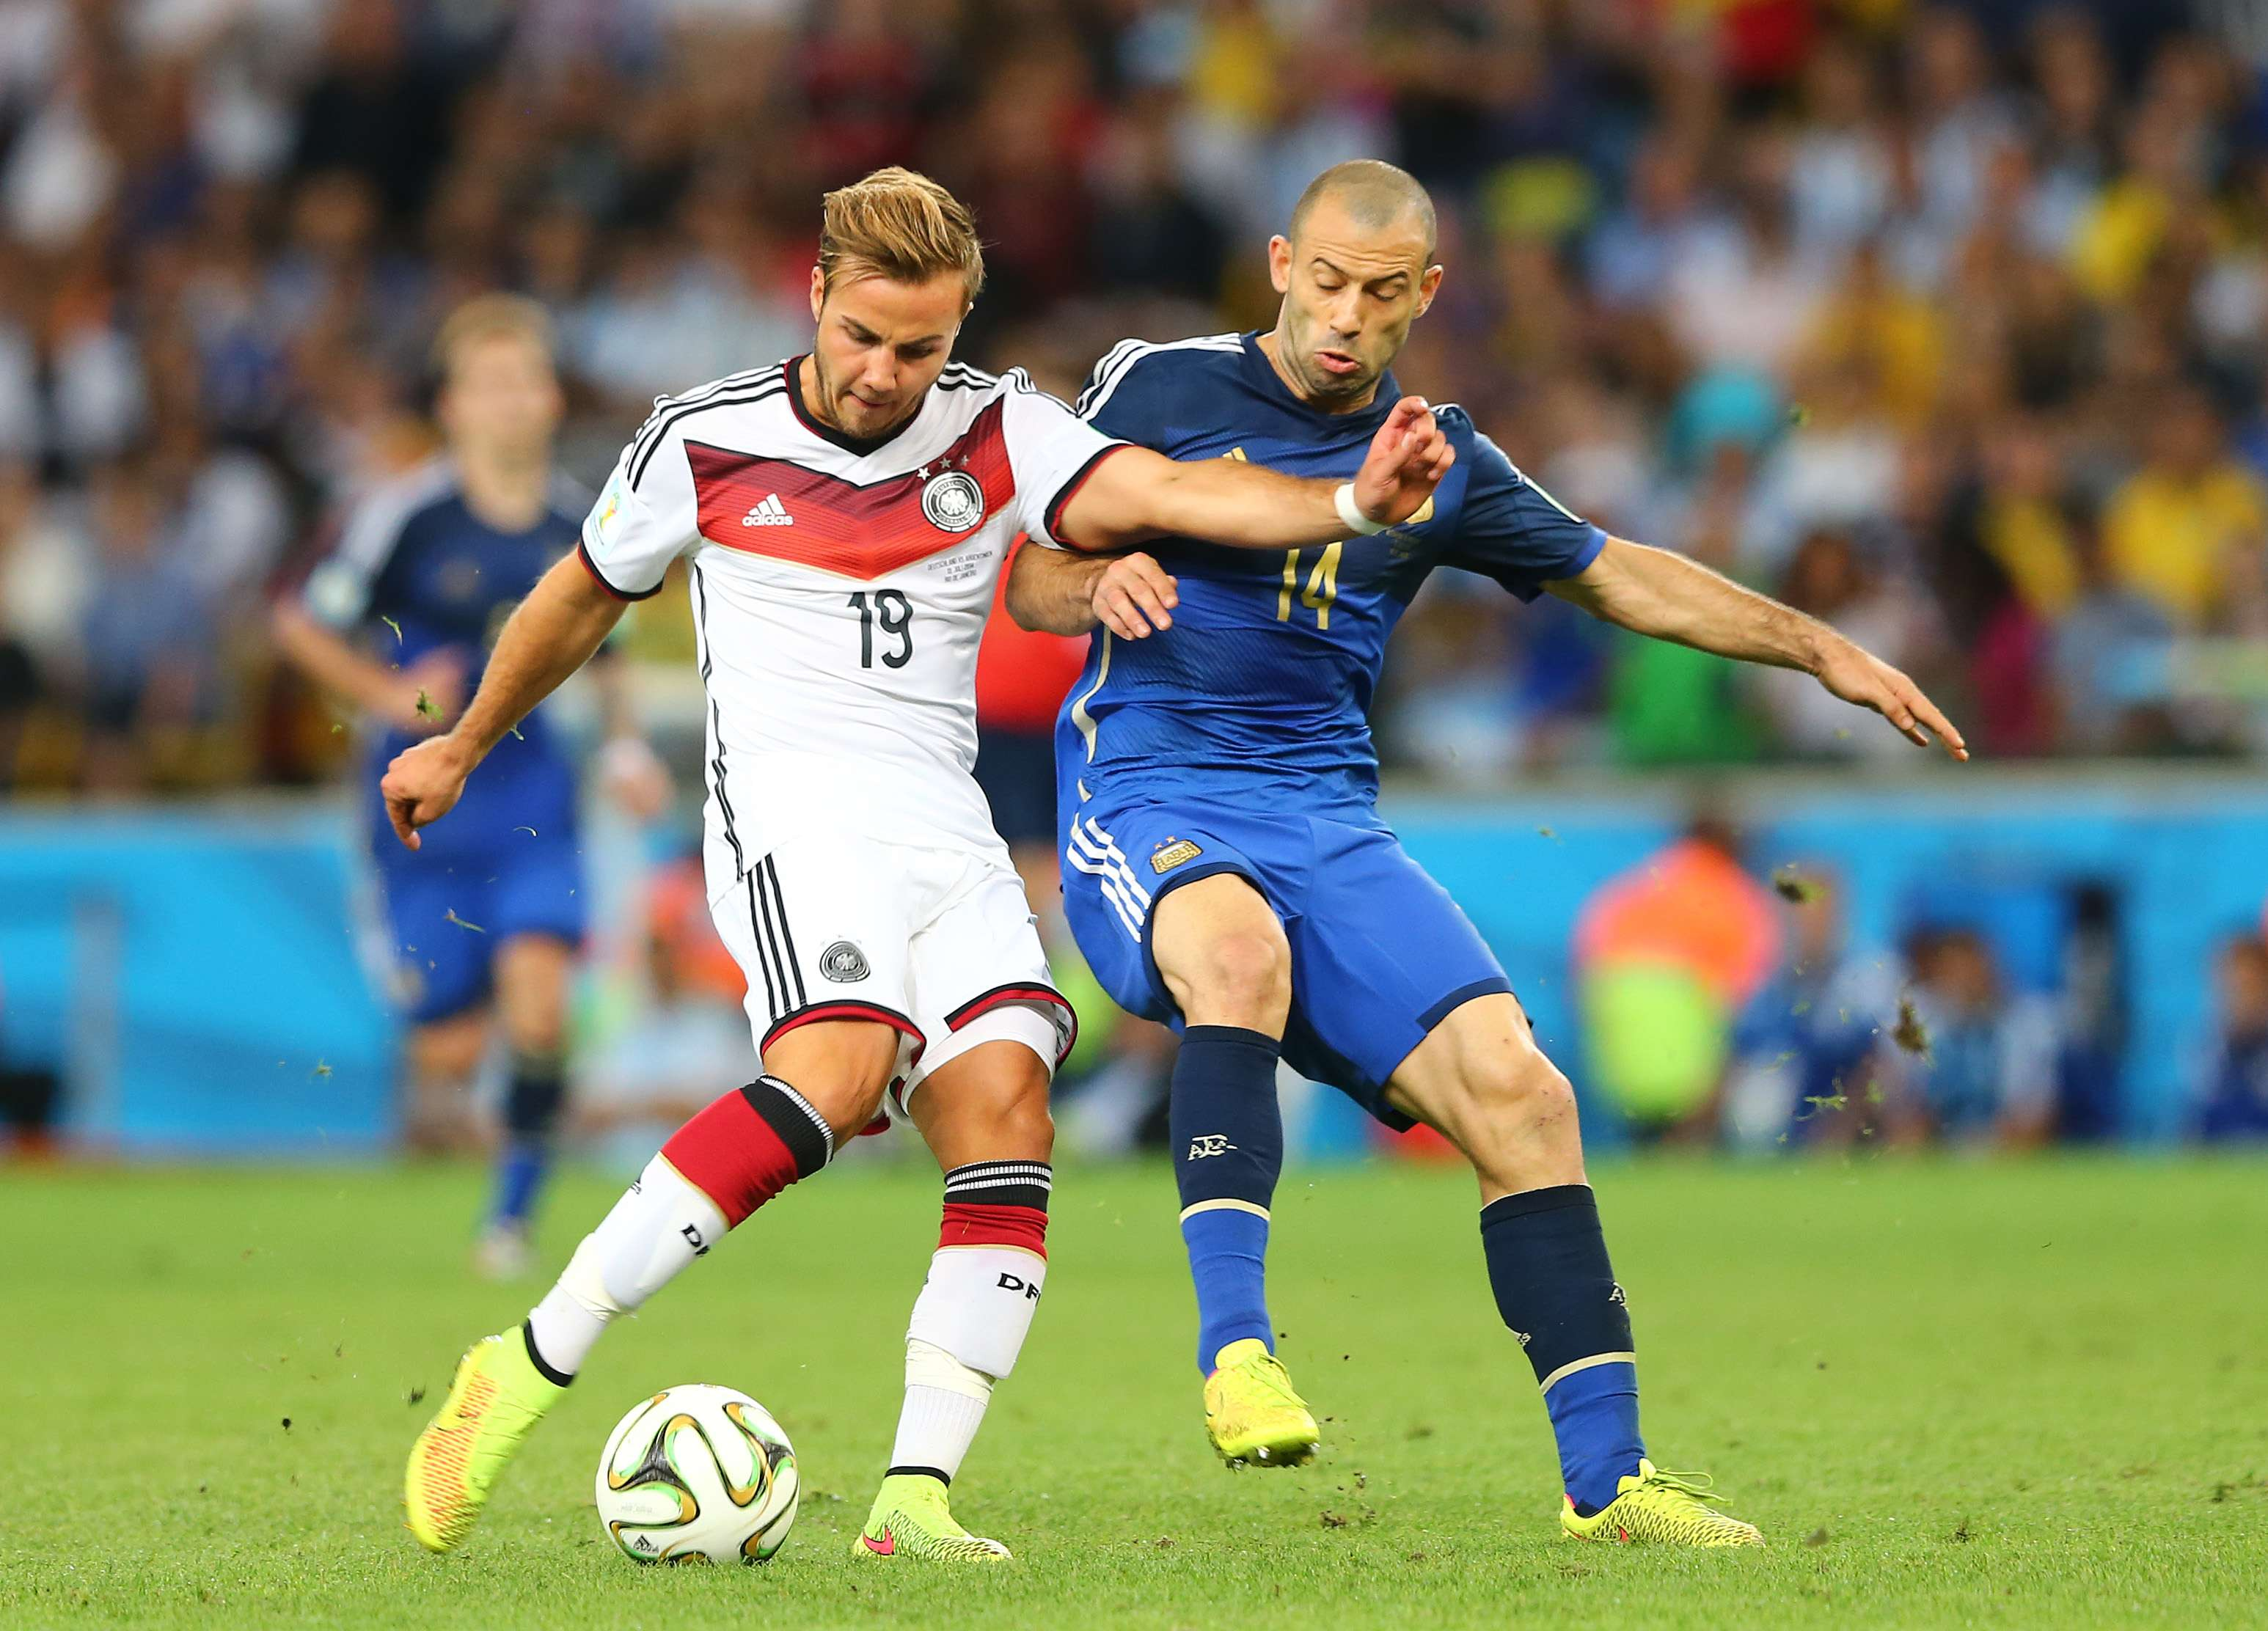 Götze e Mascherano na final da Copa do Mundo Foto: Martin Rose/Getty Images